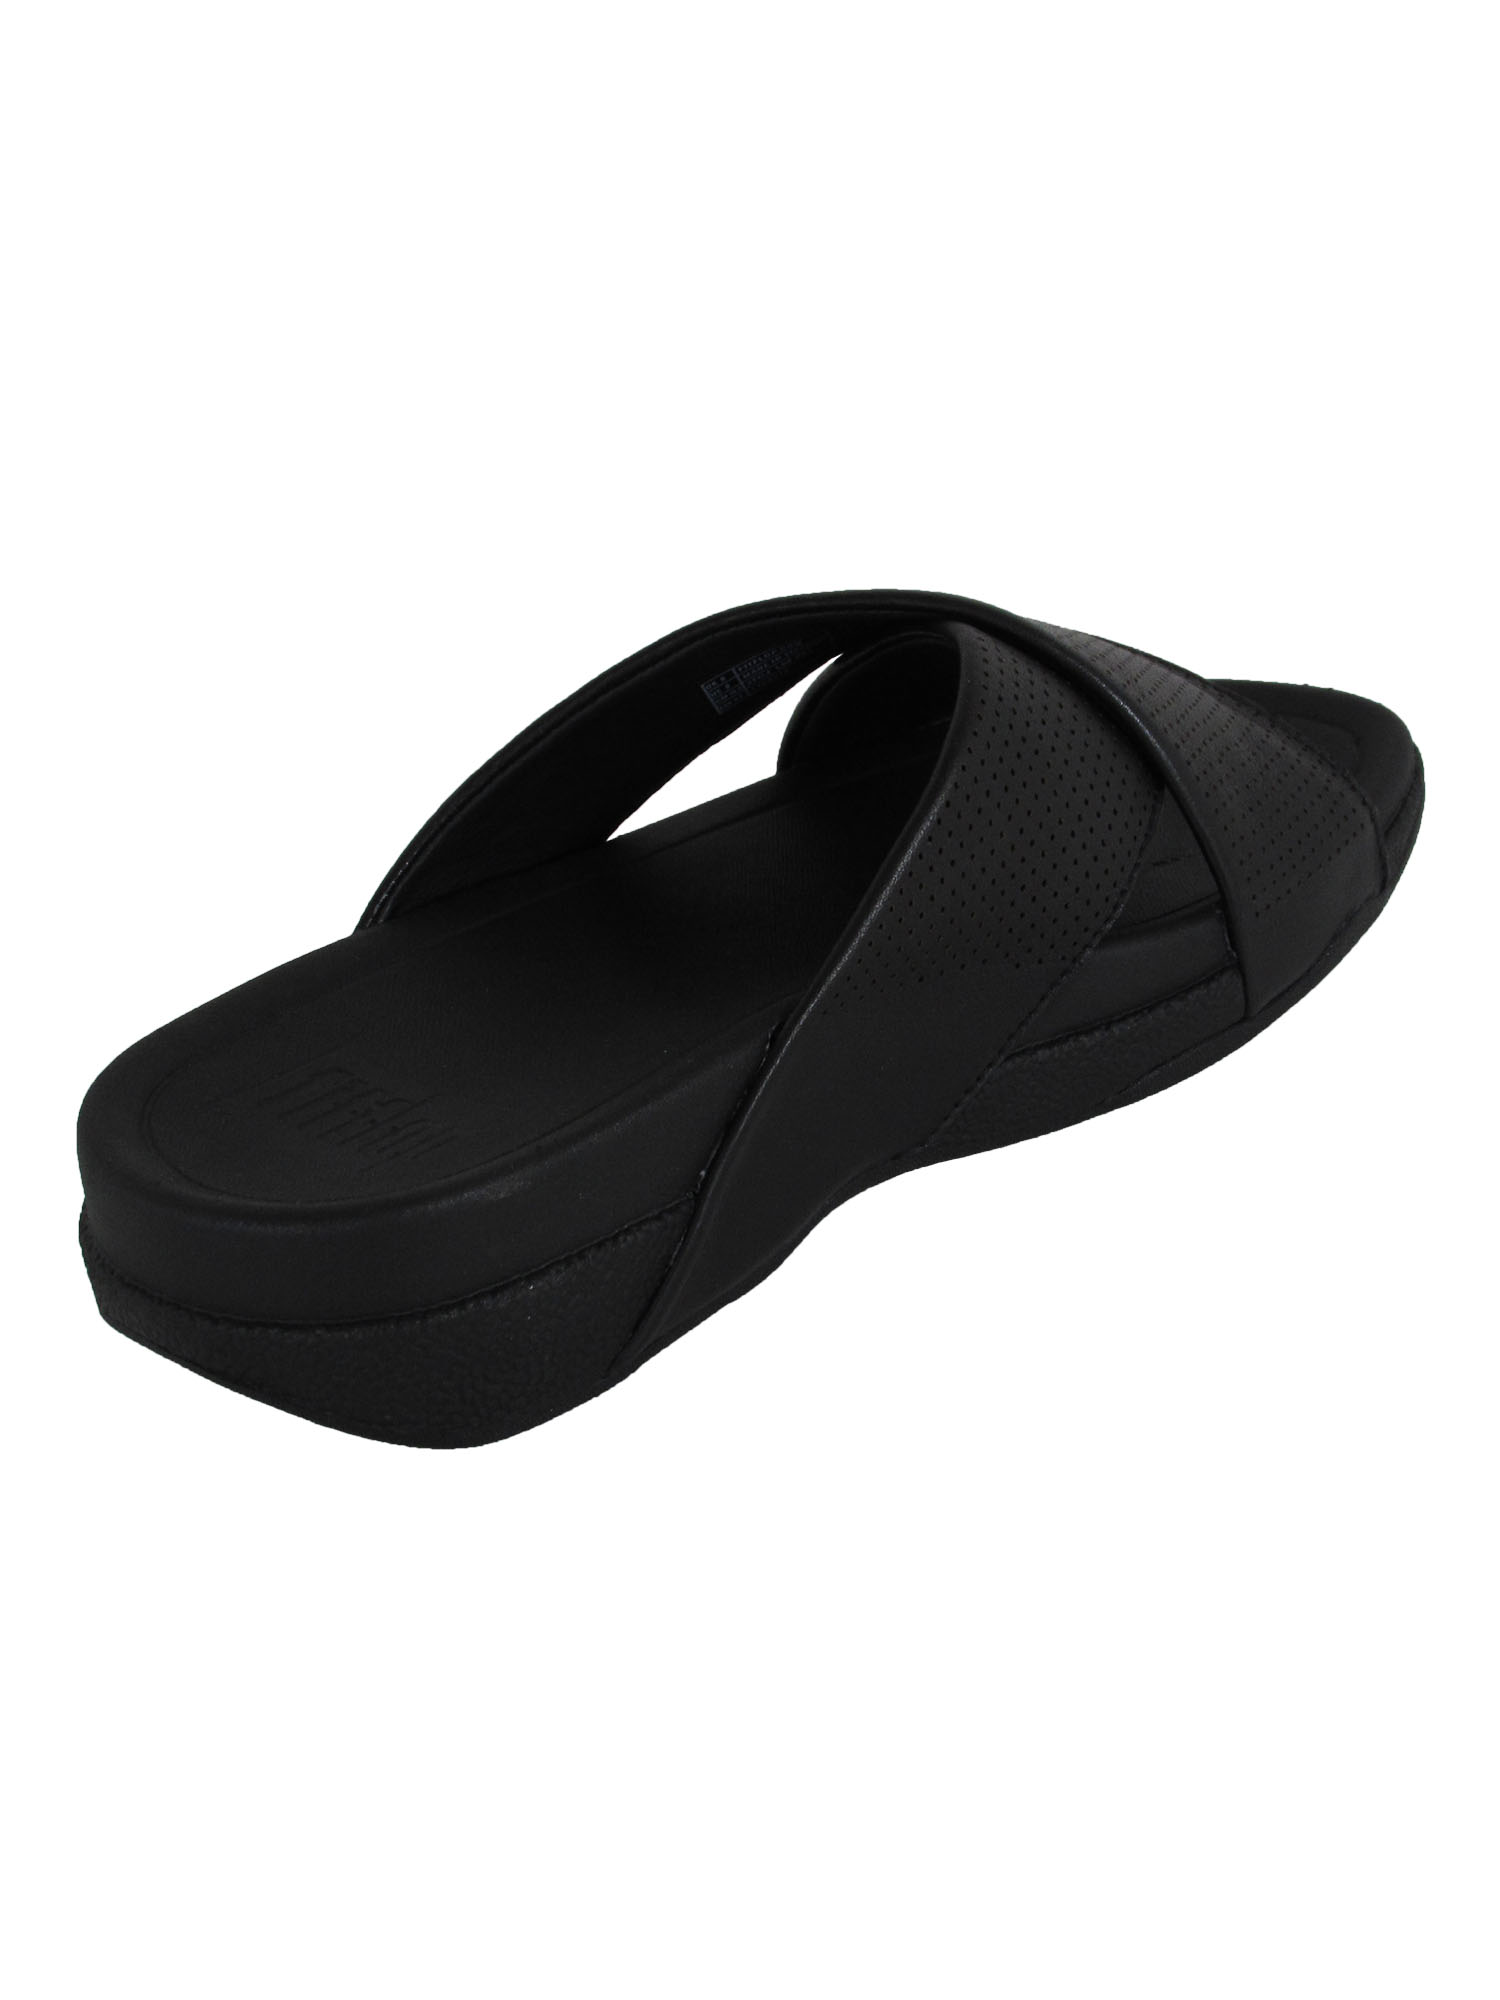 thumbnail 4 - Fitflop-Mens-Surfer-Perforated-Leather-Slide-Shoes